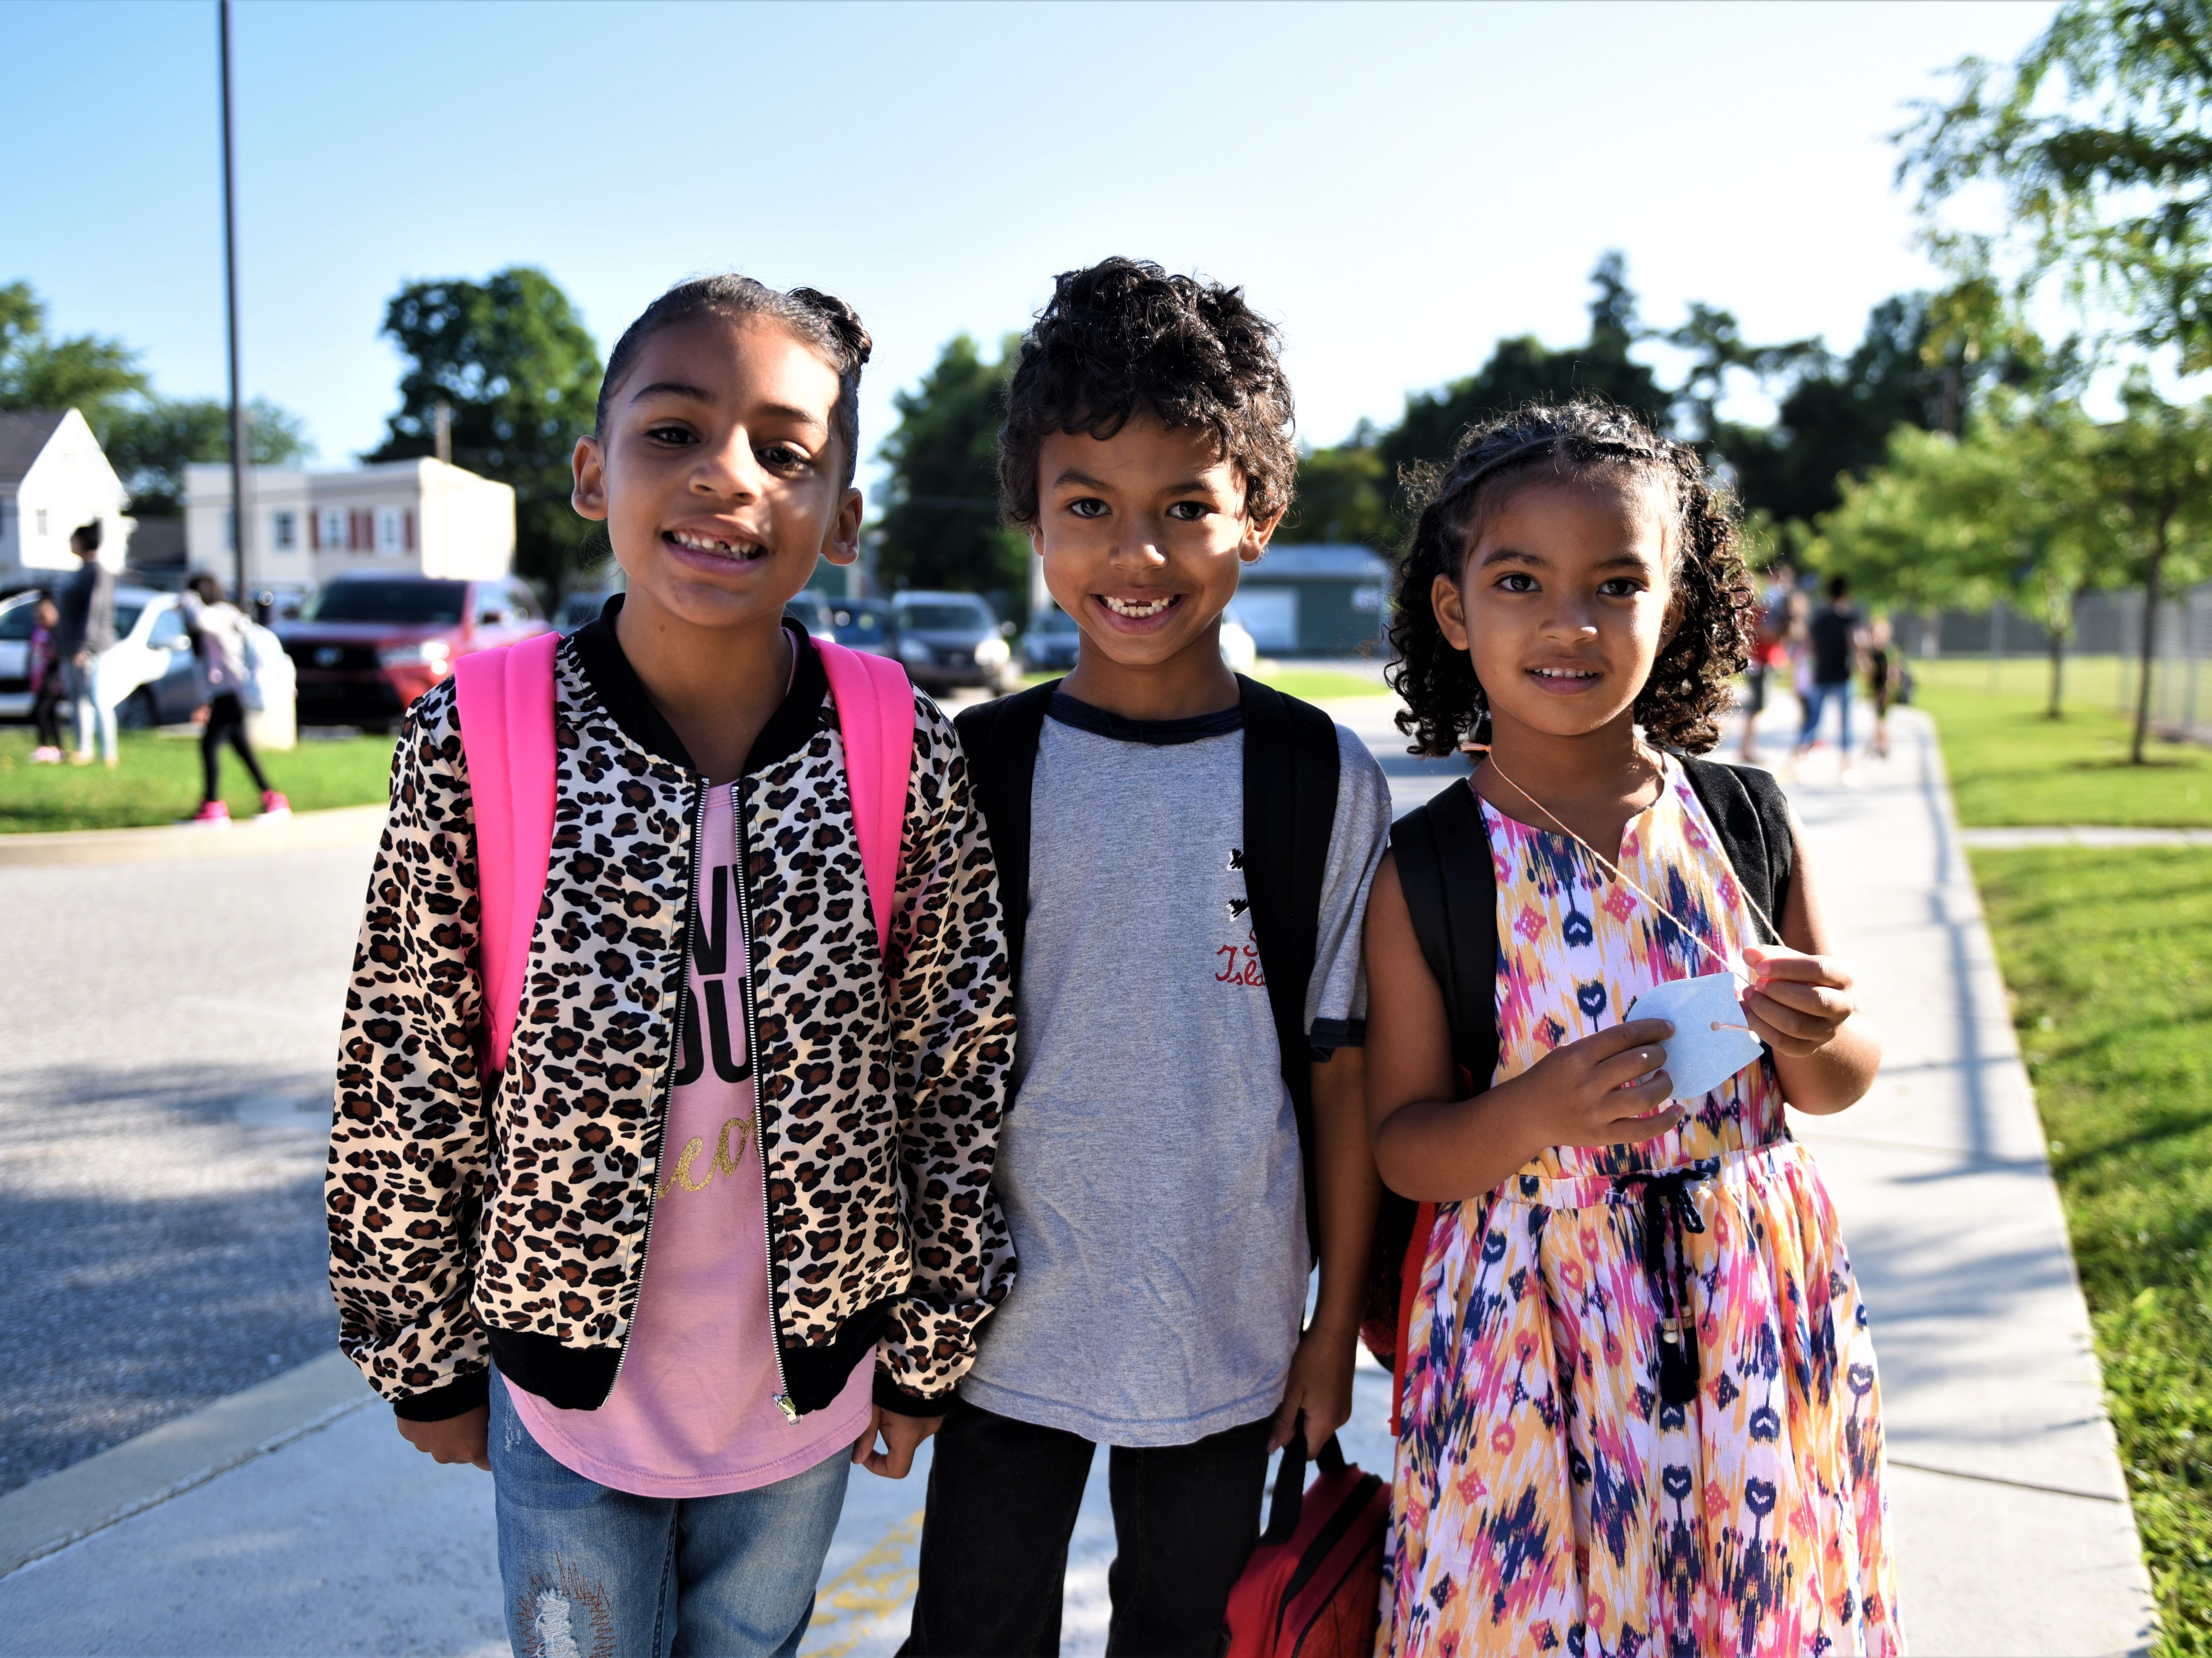 From left to right, Diamond Thomas, going into second  grade, and Mason and Jazmyn Merrell going into second grade and kindergarten at Hanover Street Elementary on Aug. 23.